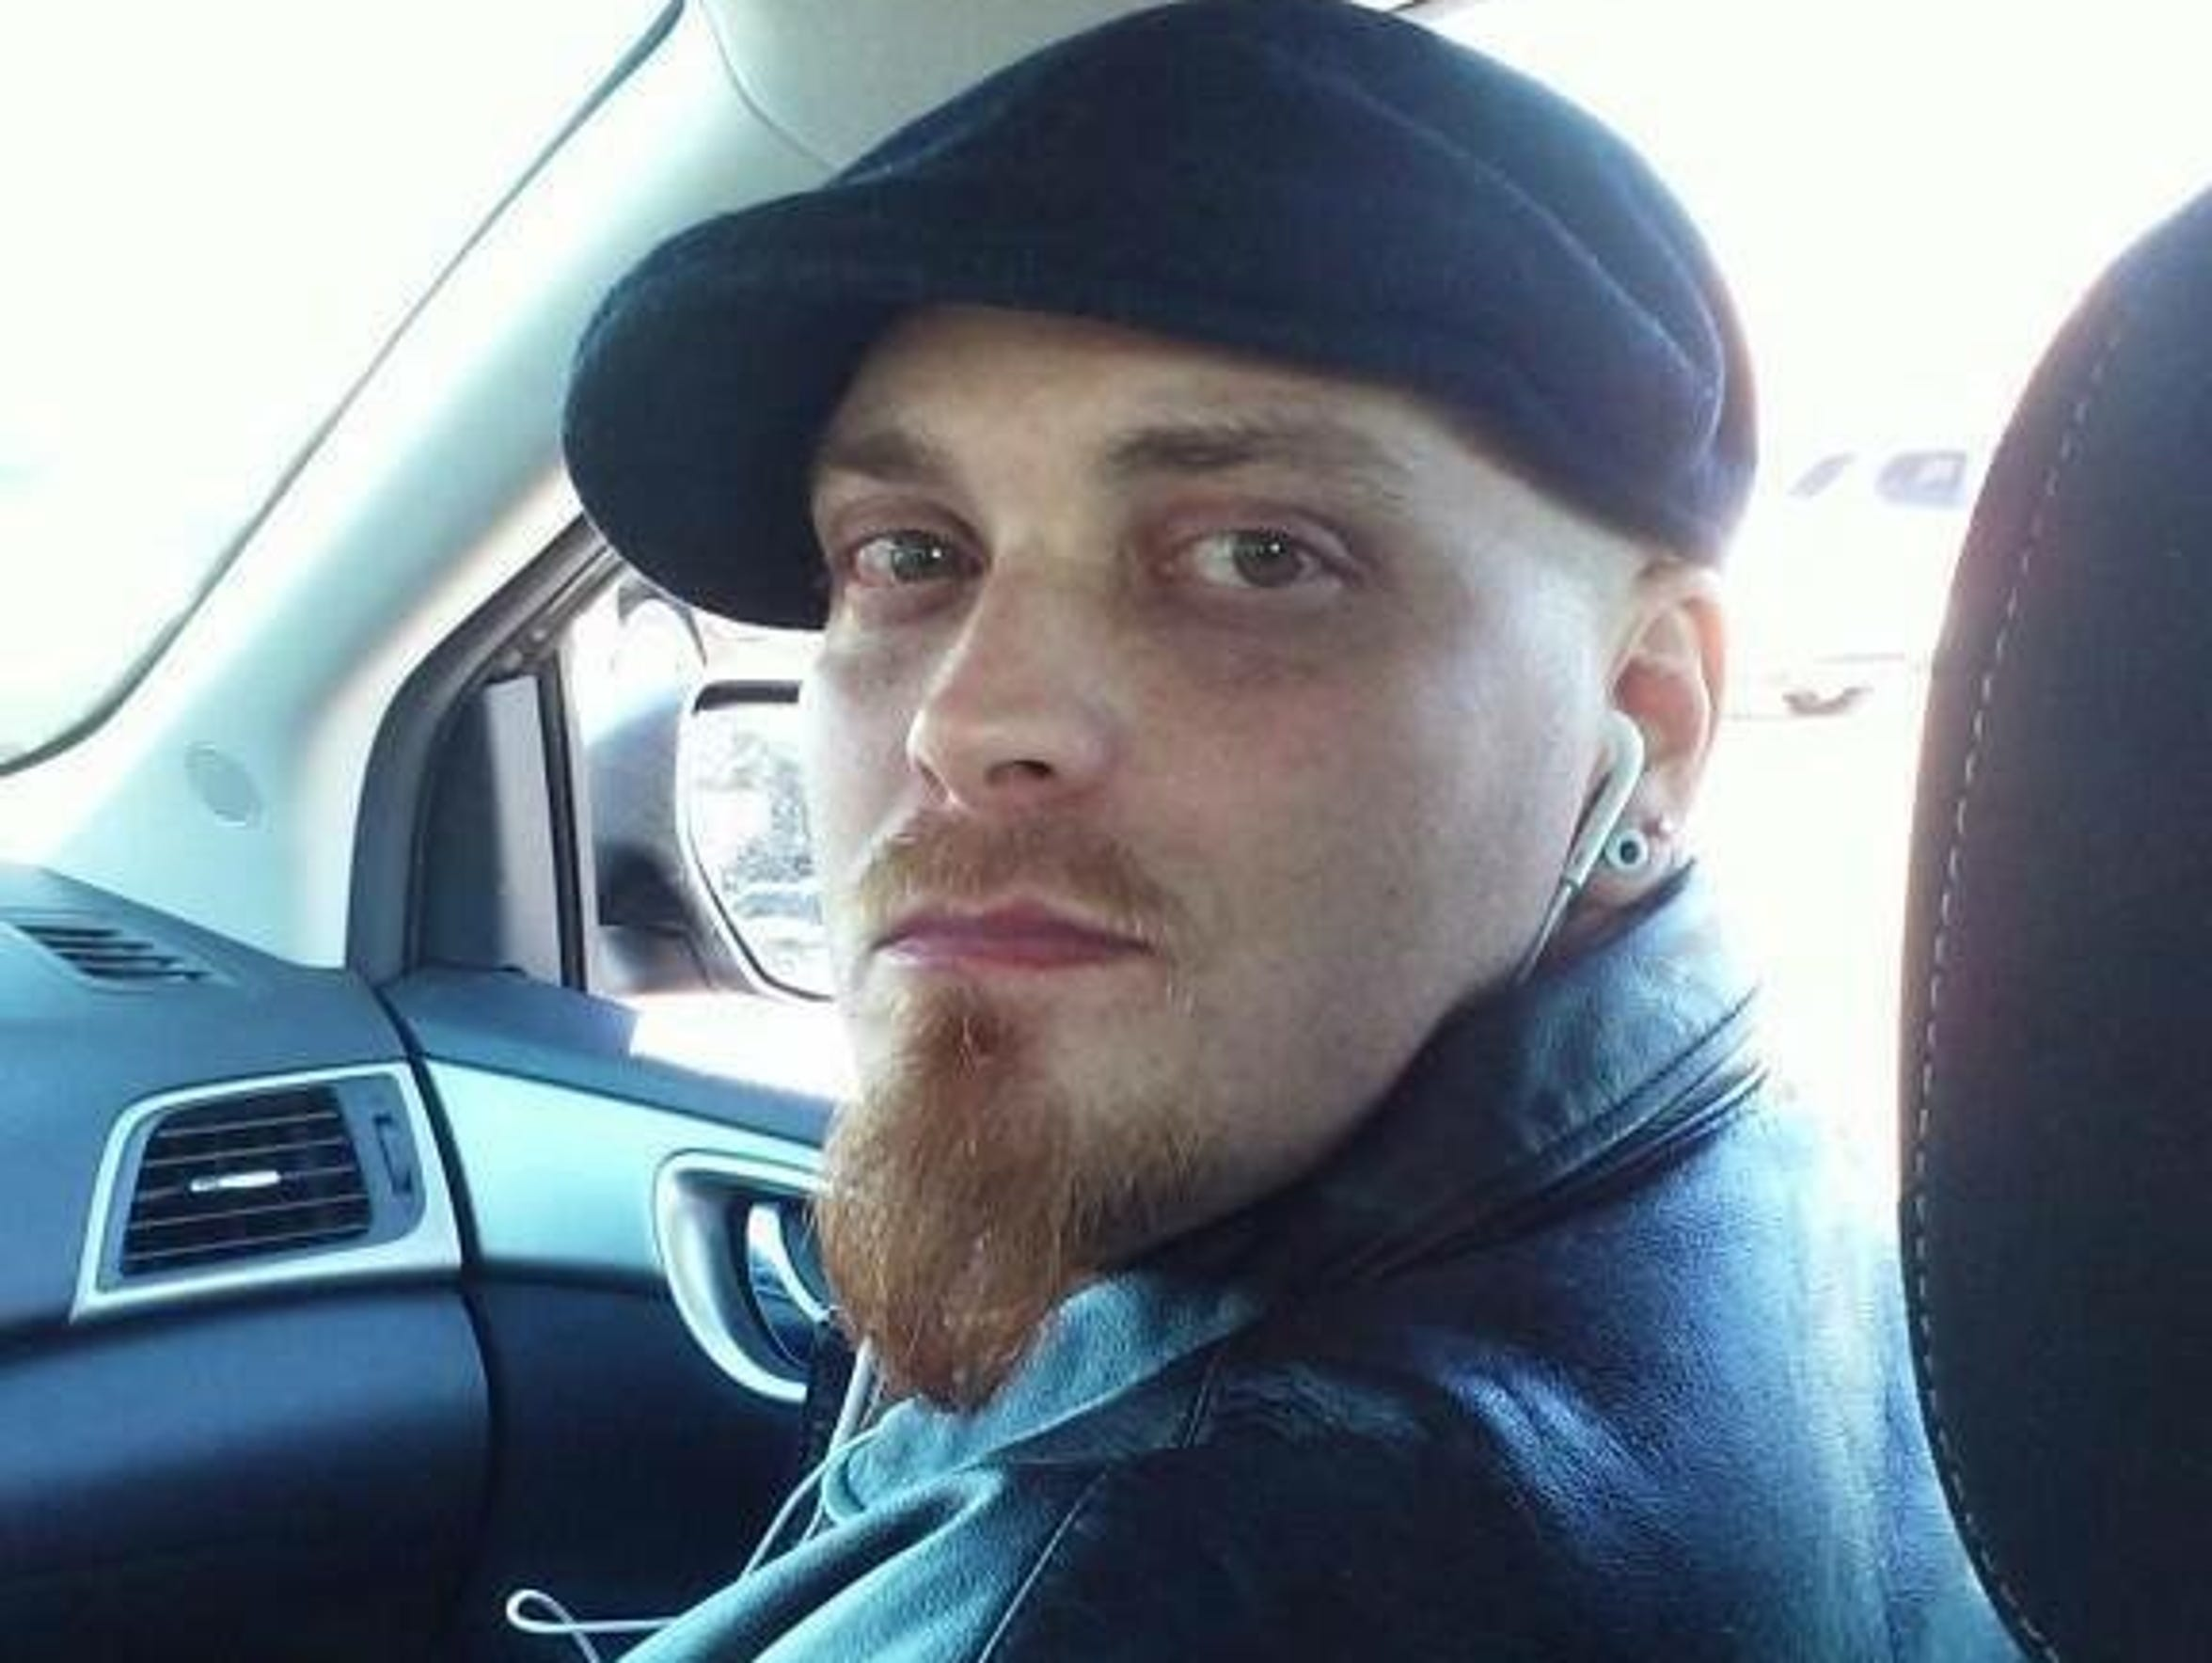 Chad Spiers, an inmate at South Mississippi Correctional Institution, says he is being denied medication to cure his hepatitis C.